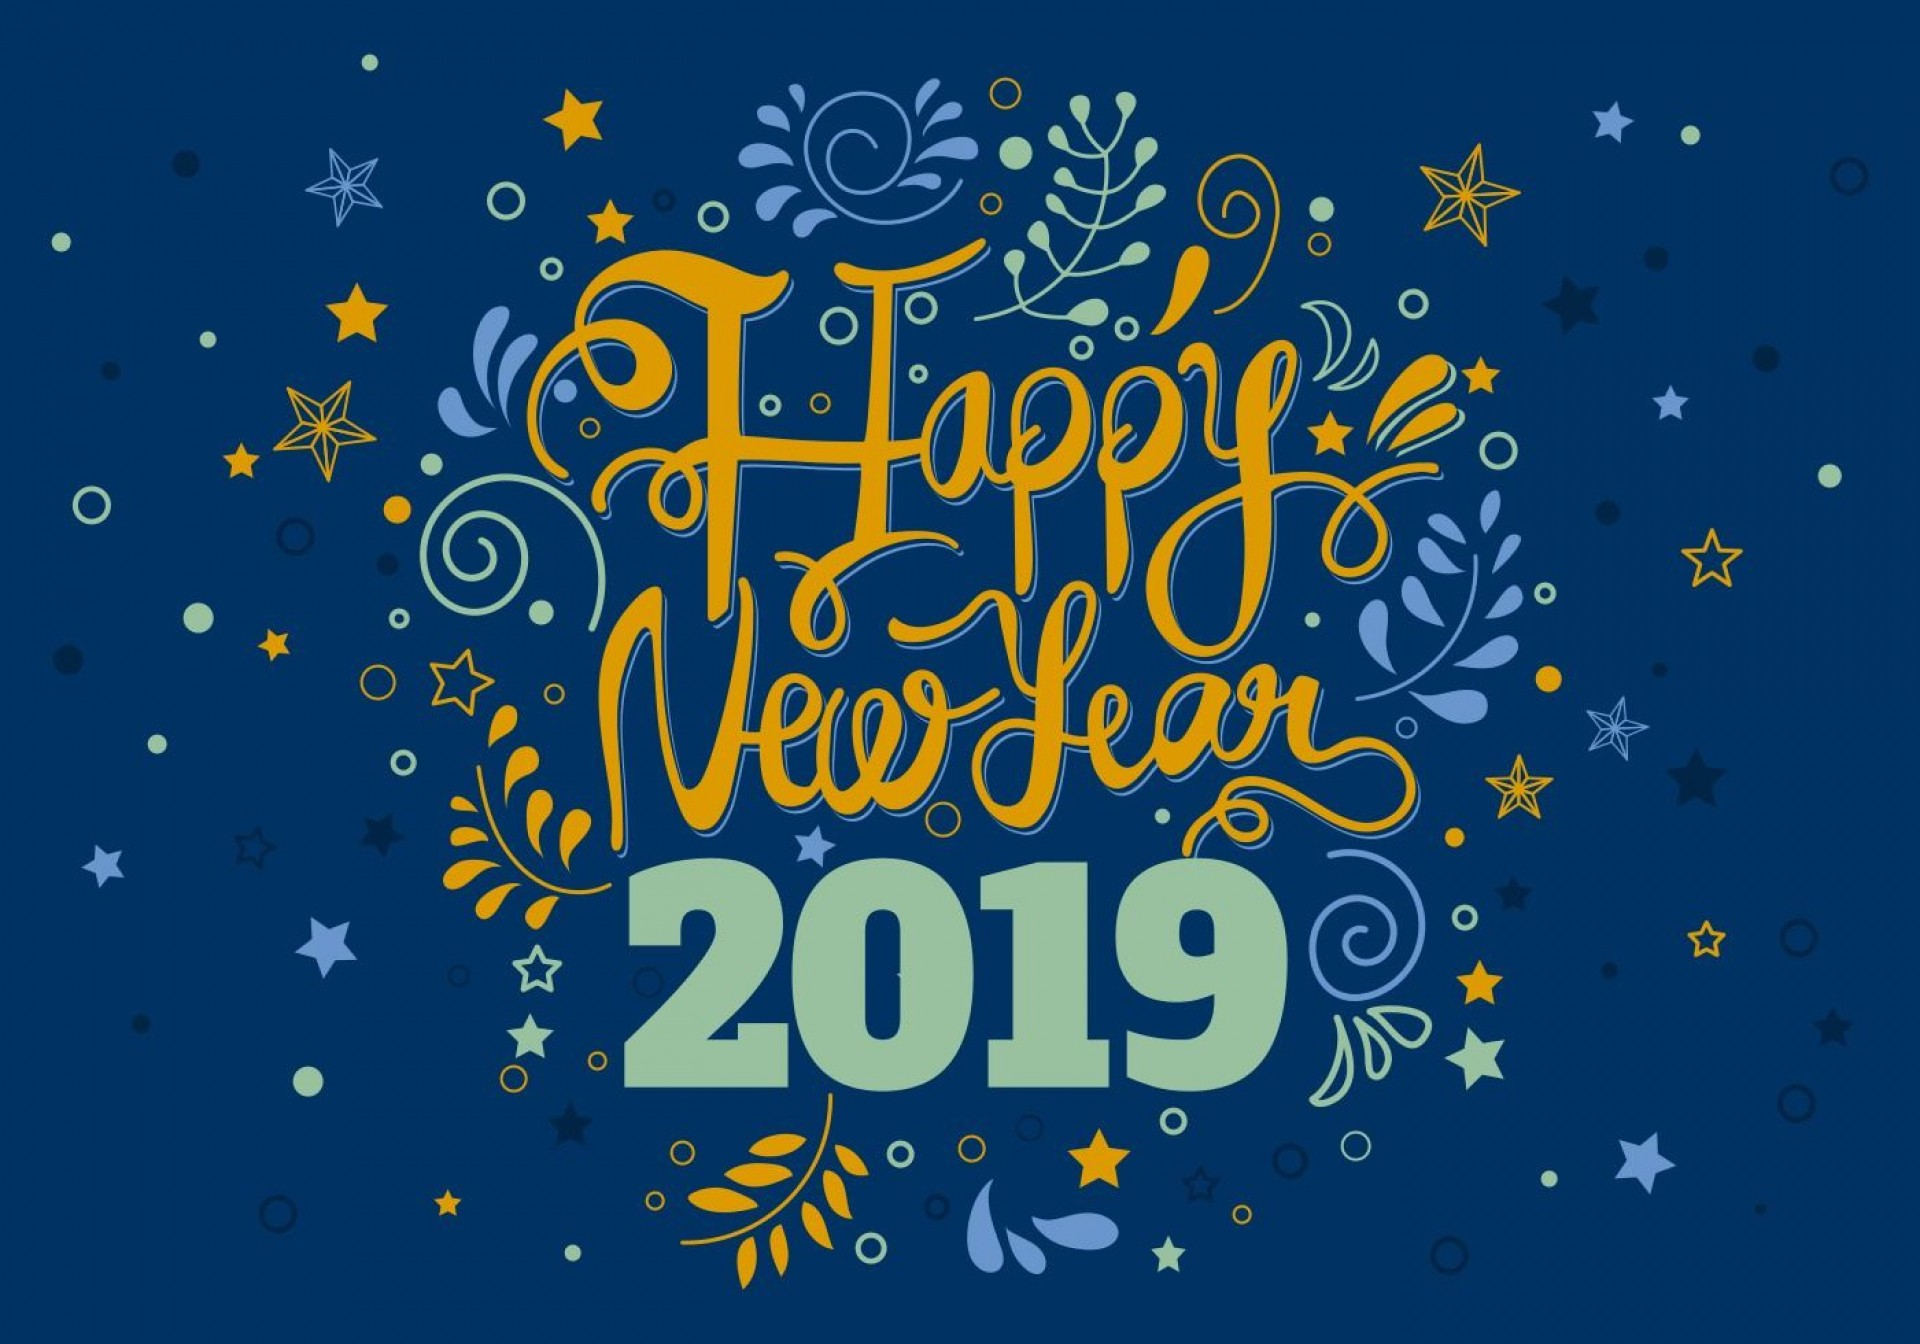 008 Awesome New Year Card Template Design  Happy Chinese 2020 Free1920